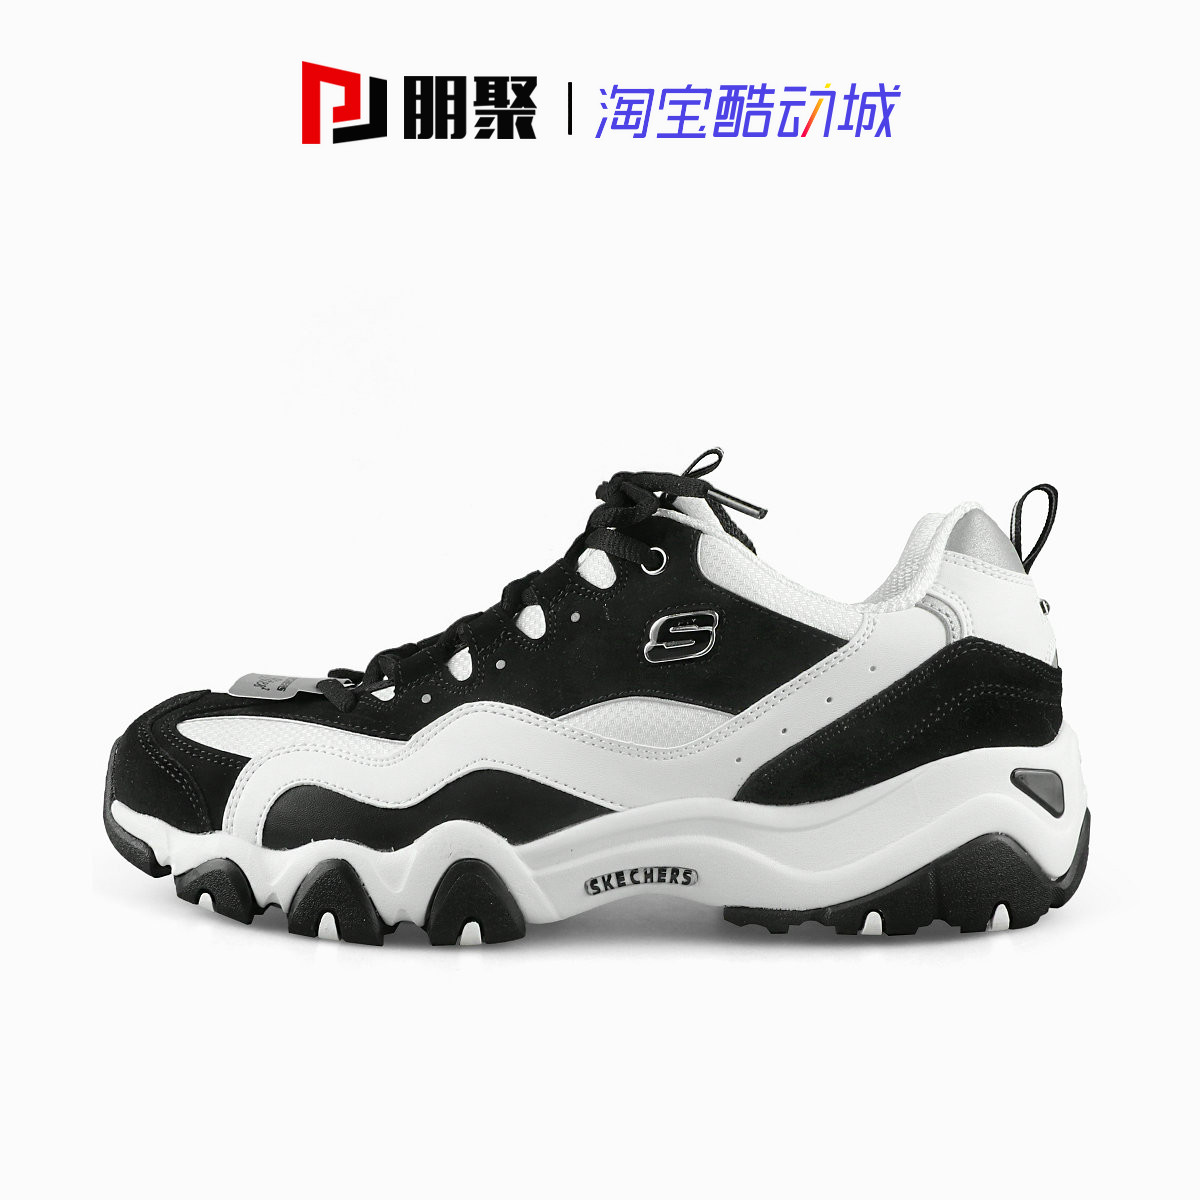 45f06c59 朋聚 Skechers SKECHERS EXO with the D'lites2 couple models black and white  panda shoes 99999069